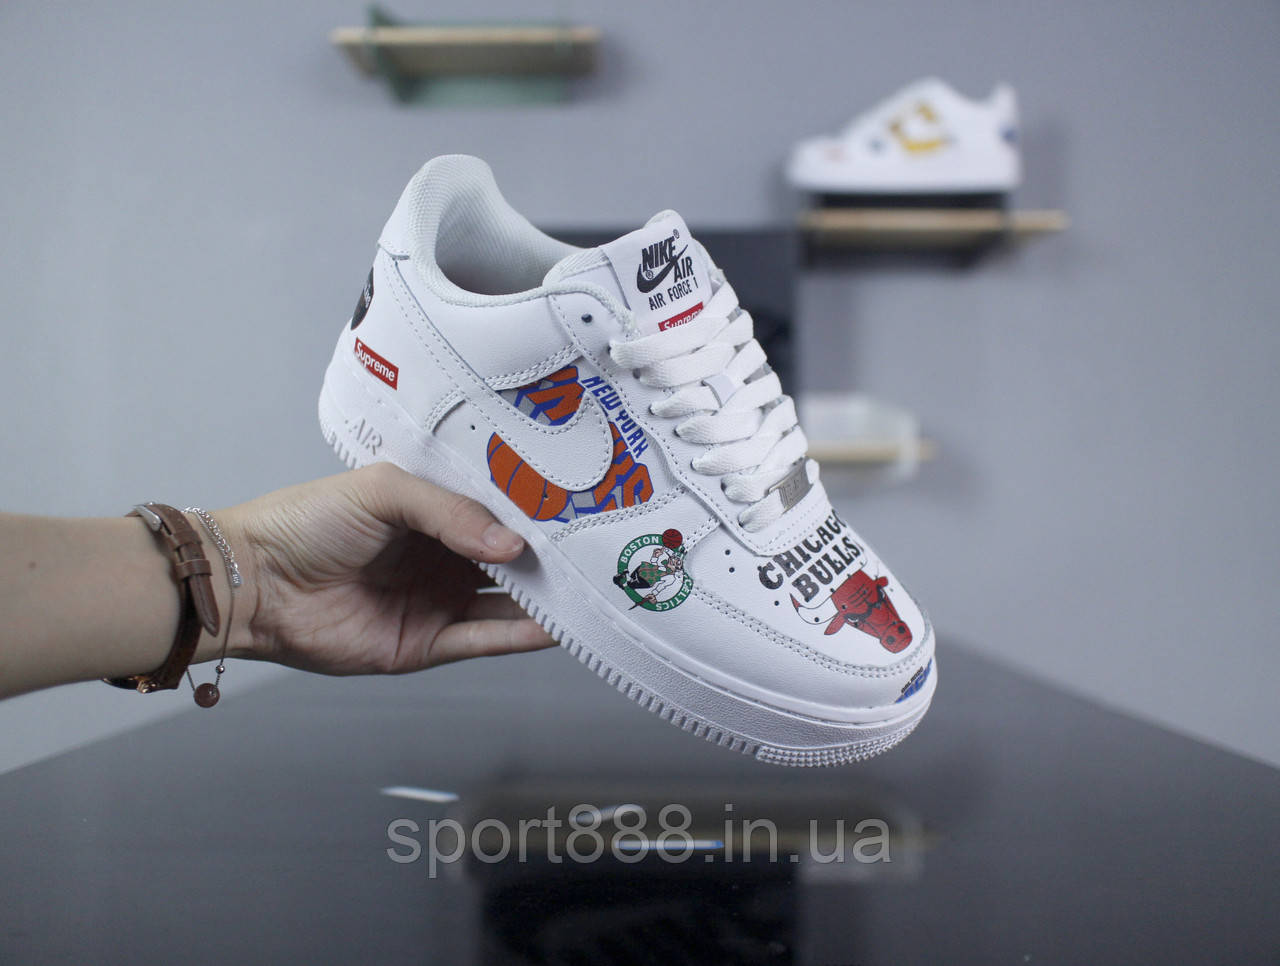 sale retailer fc59b 1e7fa Supreme x NBA x Nike Air Force 1 Low кроссовки